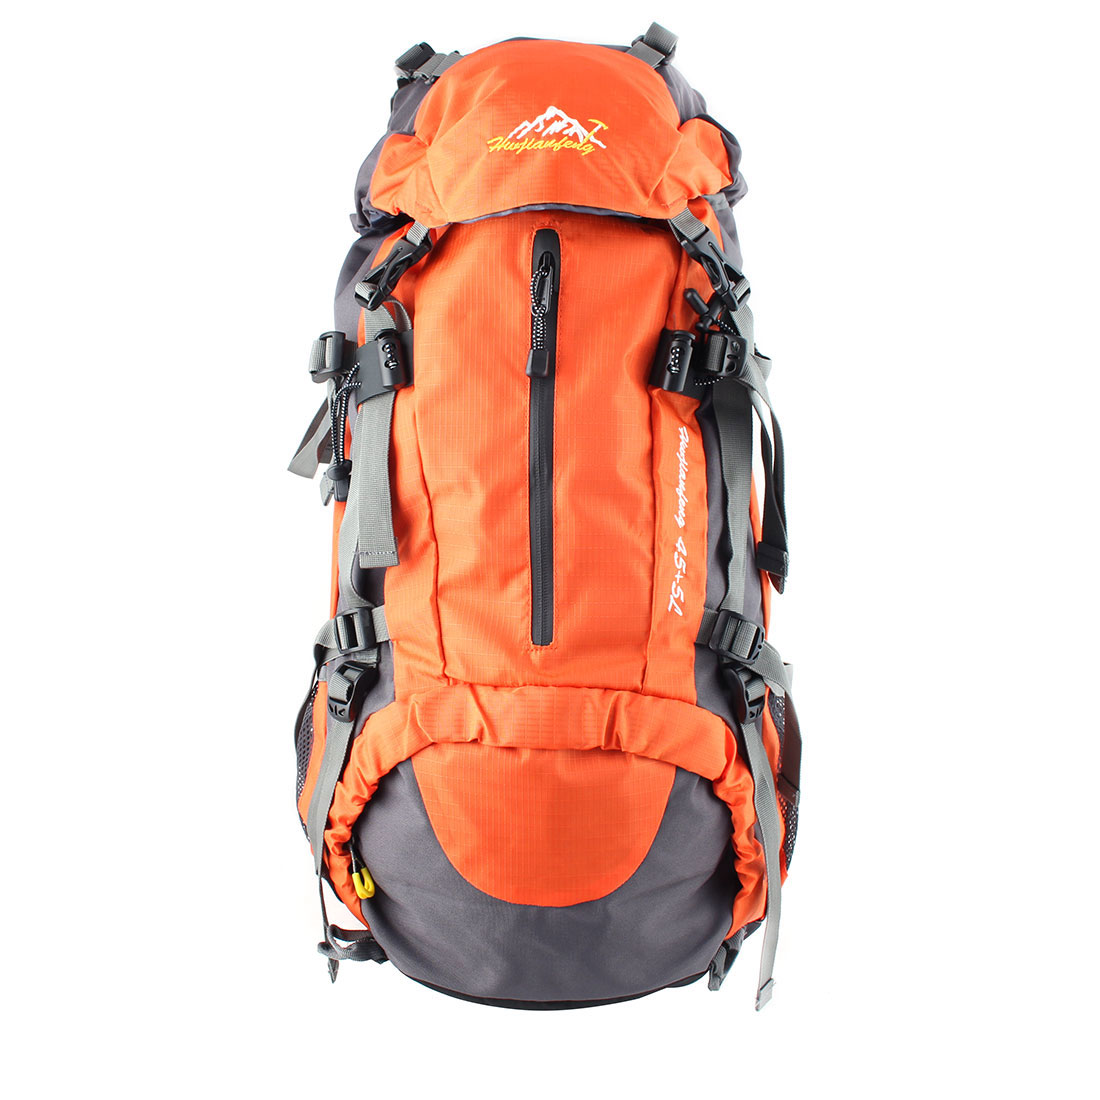 HWJIANFENG Authorized Outdoor Travel Trekking Climbing Mountaineering Pack Water Resistant Lightweight Sport Bag Hiking Backpack Daypack Orange 50L